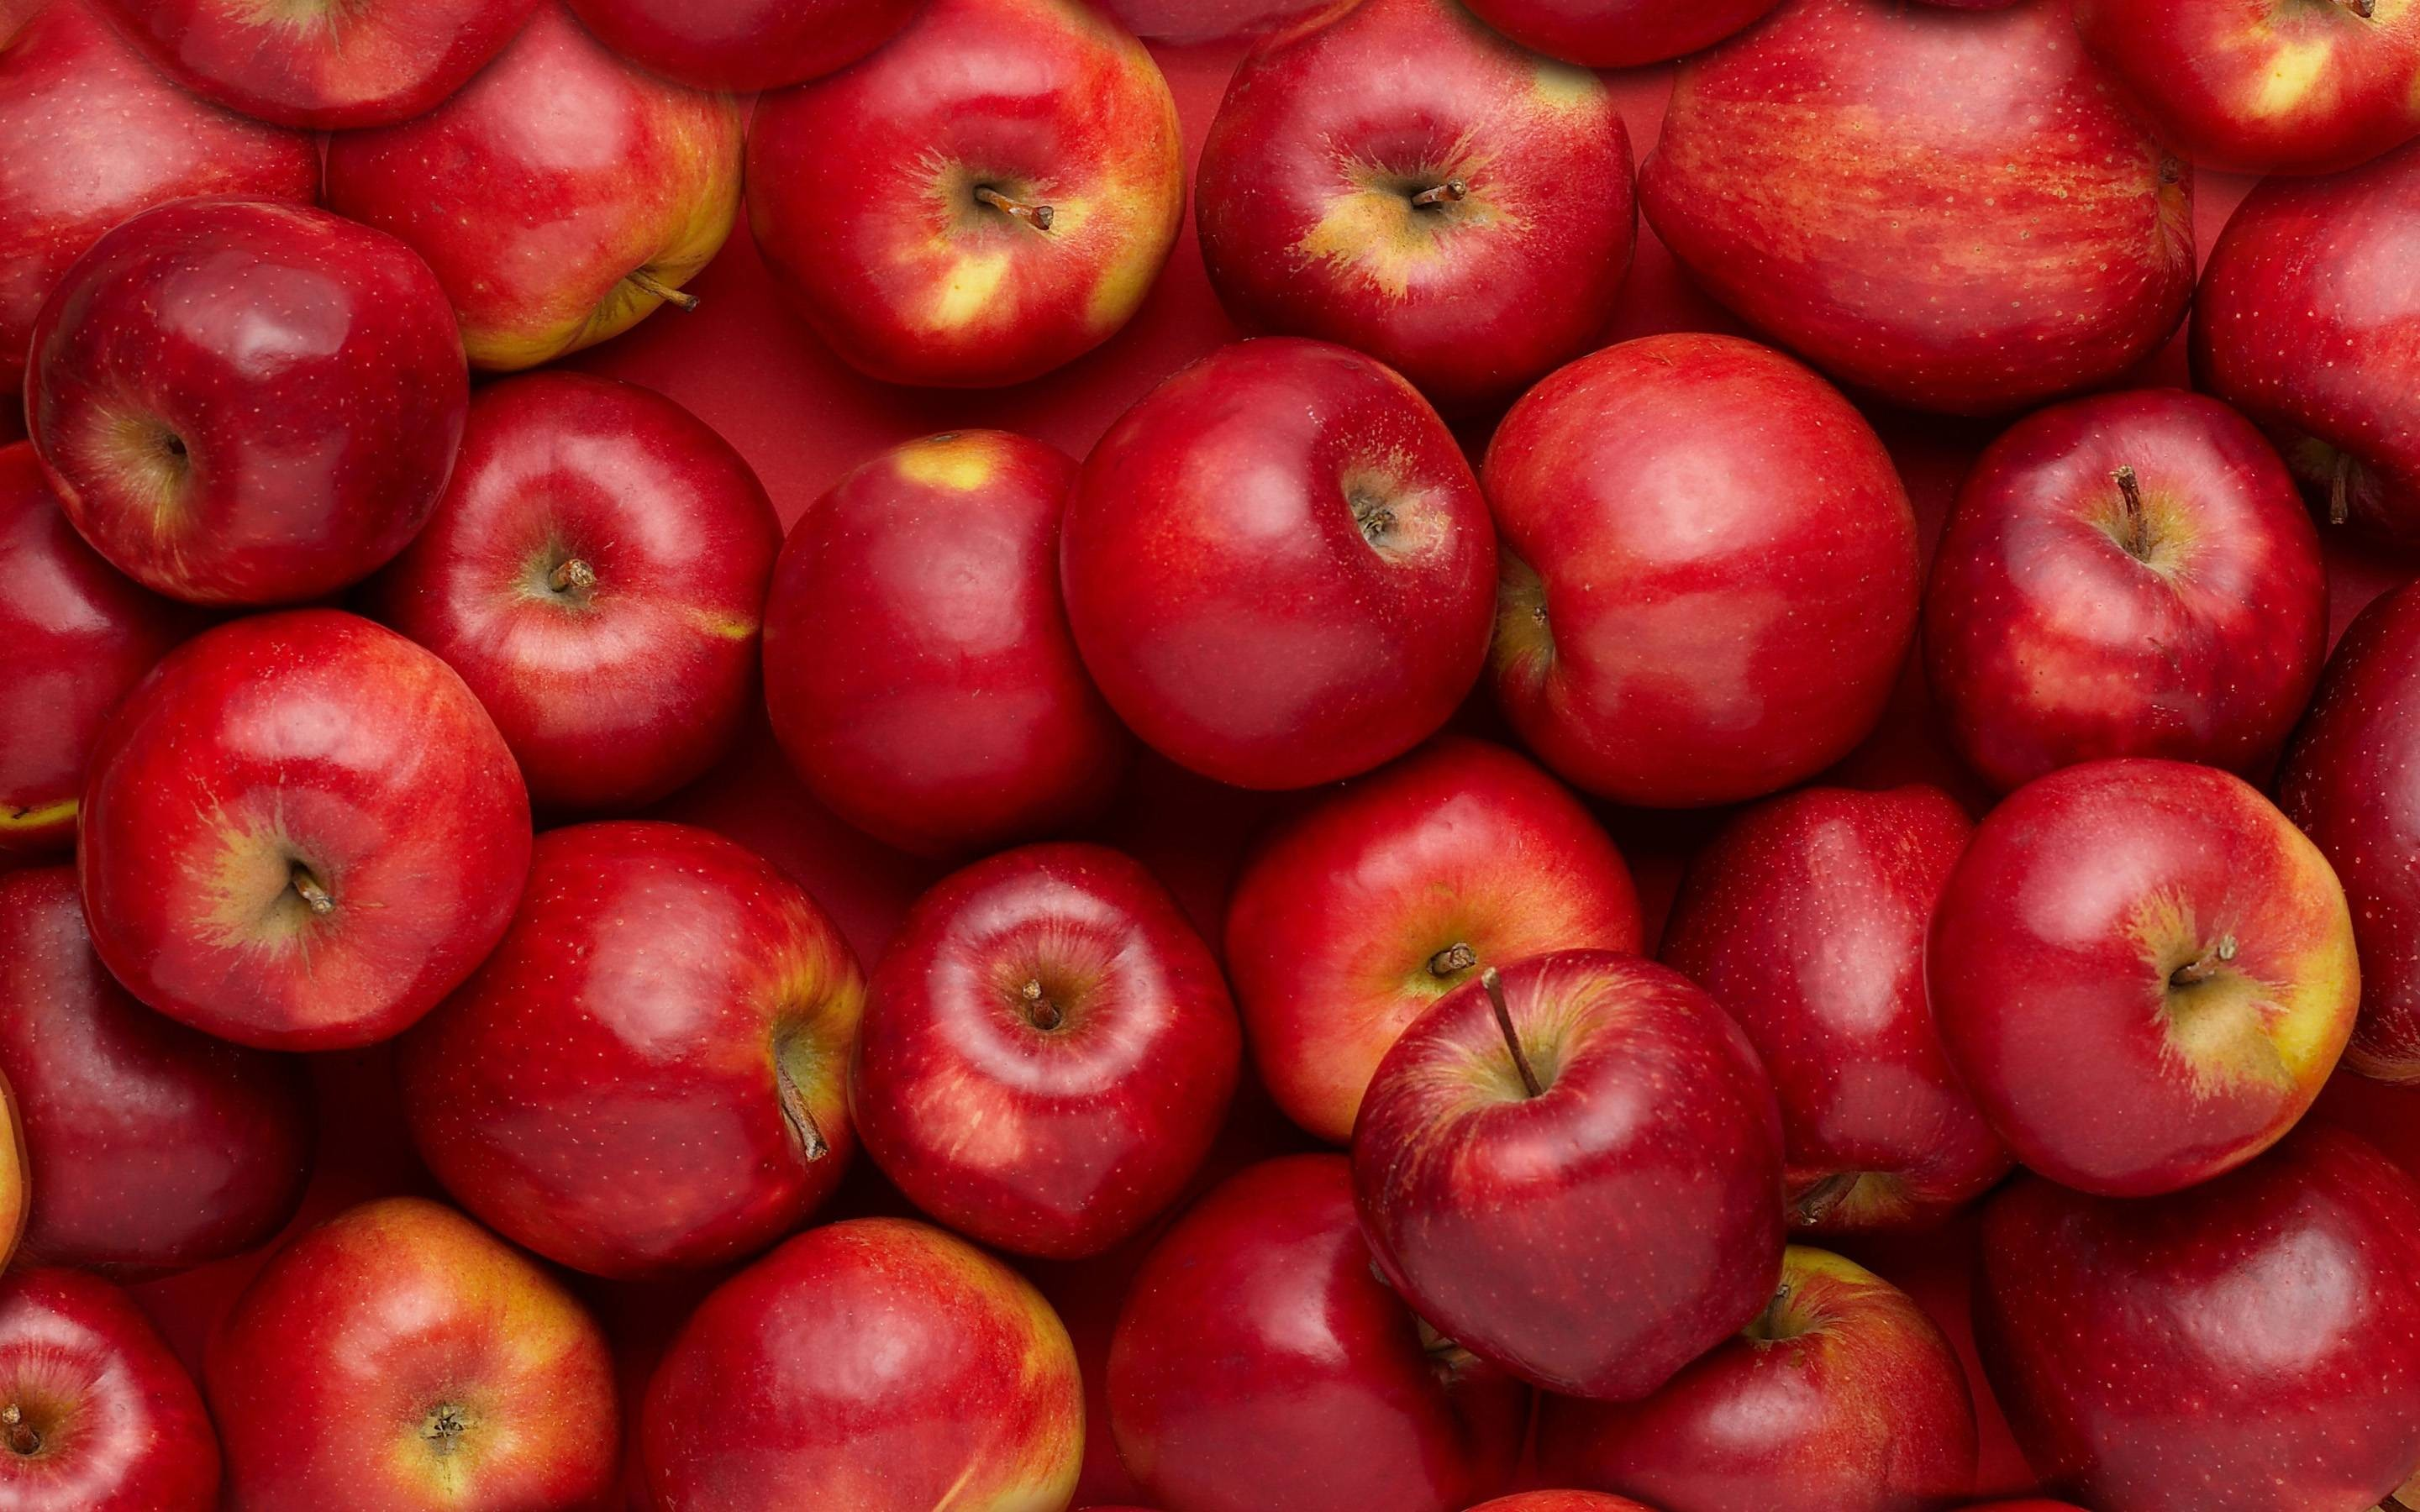 Red Apple Wallpapers - Wallpaper Cave |Red Apples Wallpaper